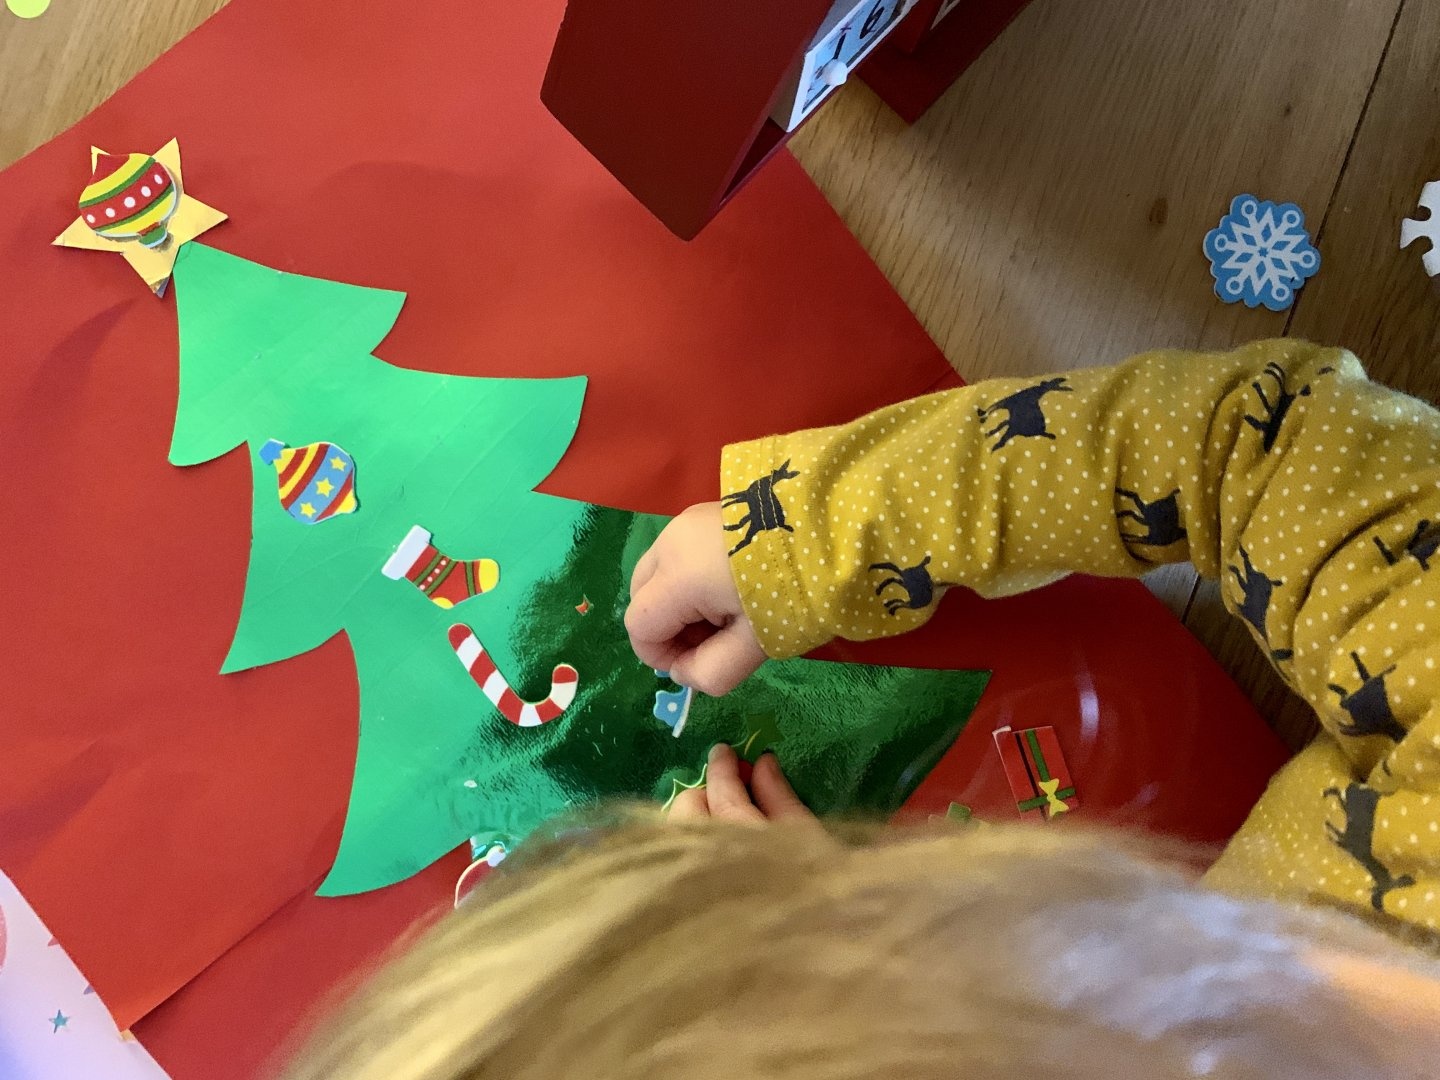 A toddler sticks foam Christmas stickers onto a picture of a shiny green Christmas tree.